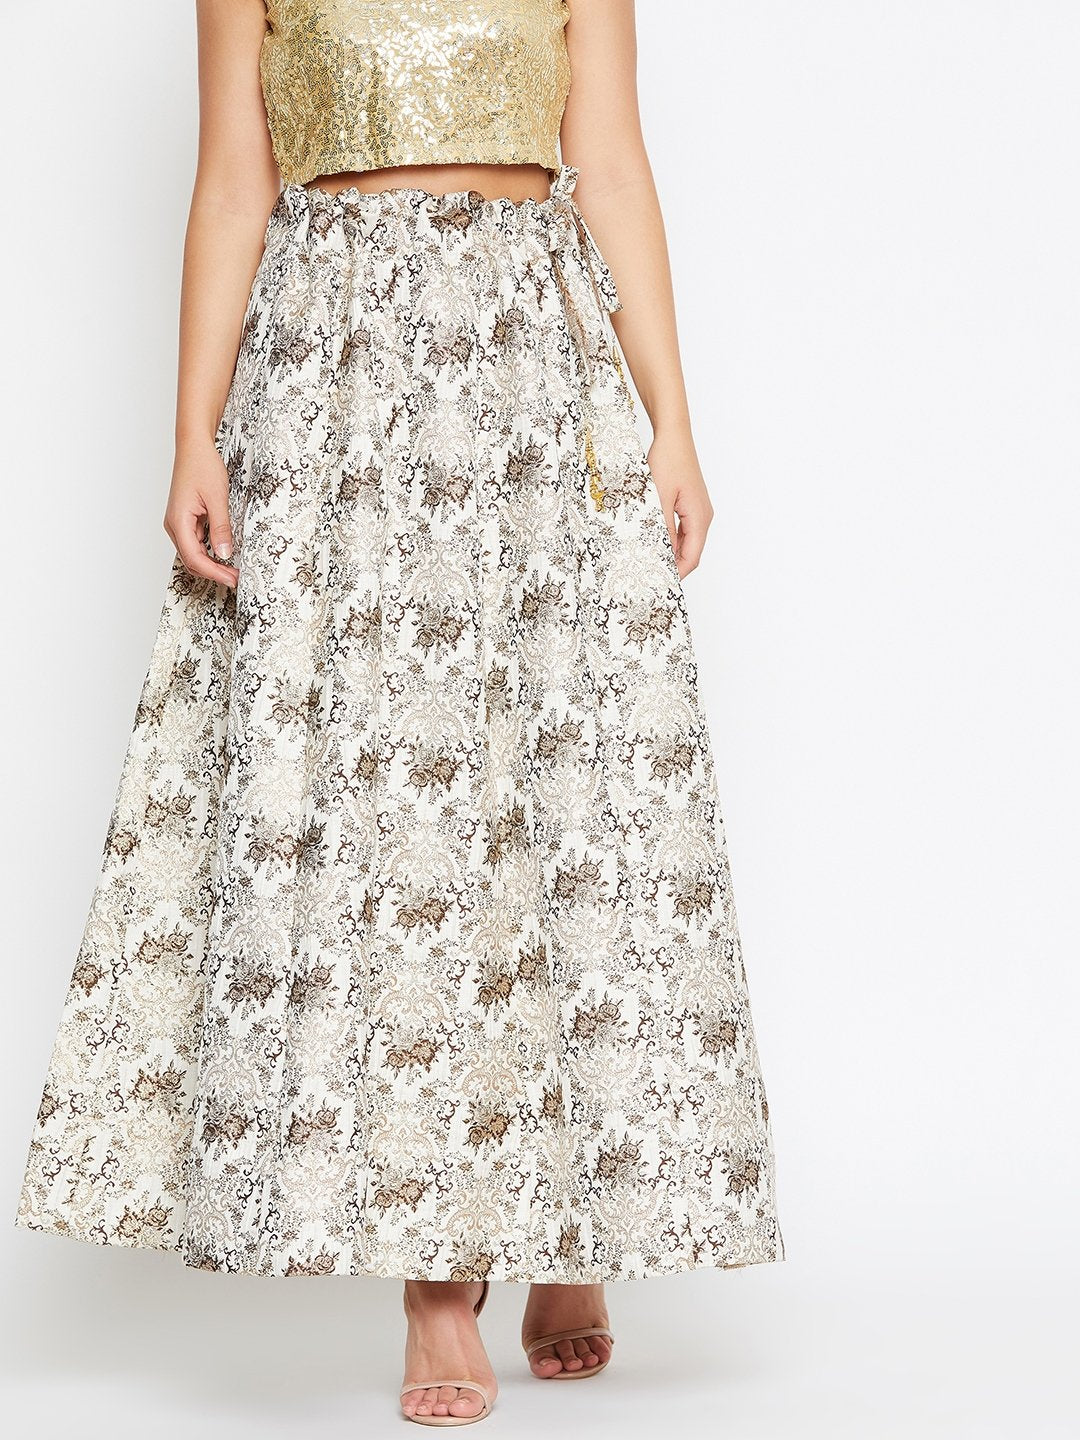 Castle White and Gold brocade Flared maxi Skirt